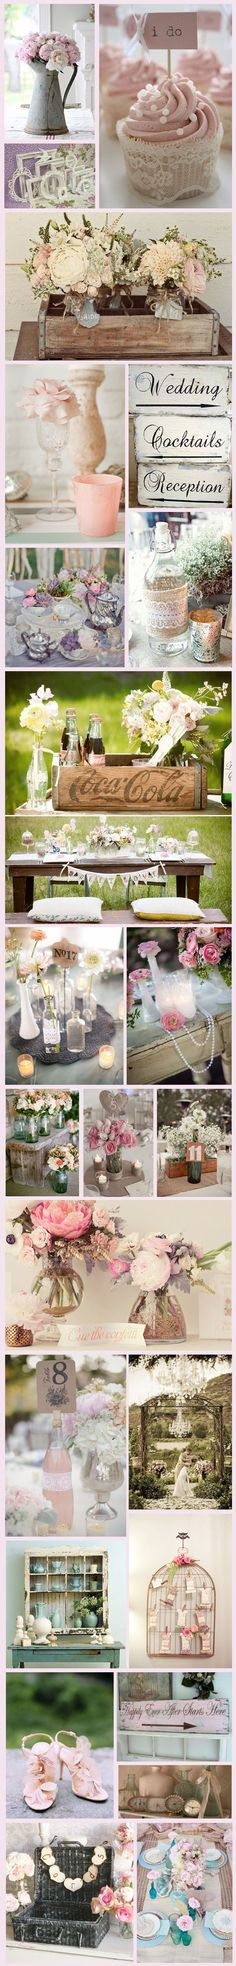 beautiful vintage ideas